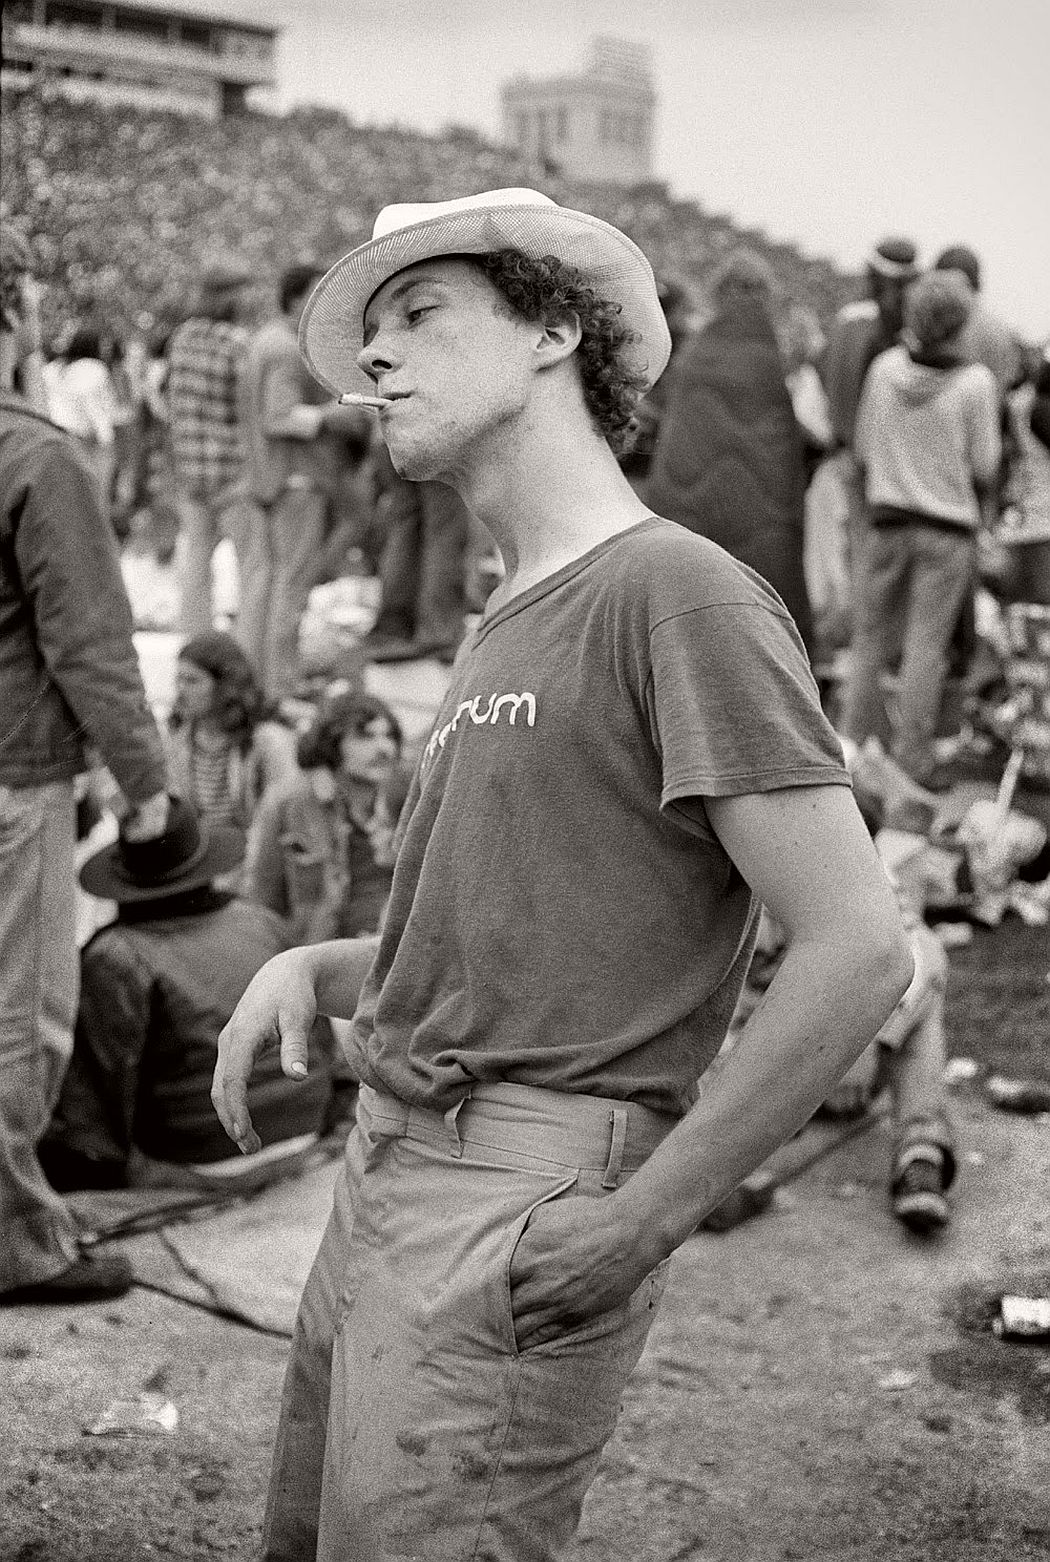 vintage-bw-photos-of-rolling-stones-fans-by-joseph-szabo-1978-05